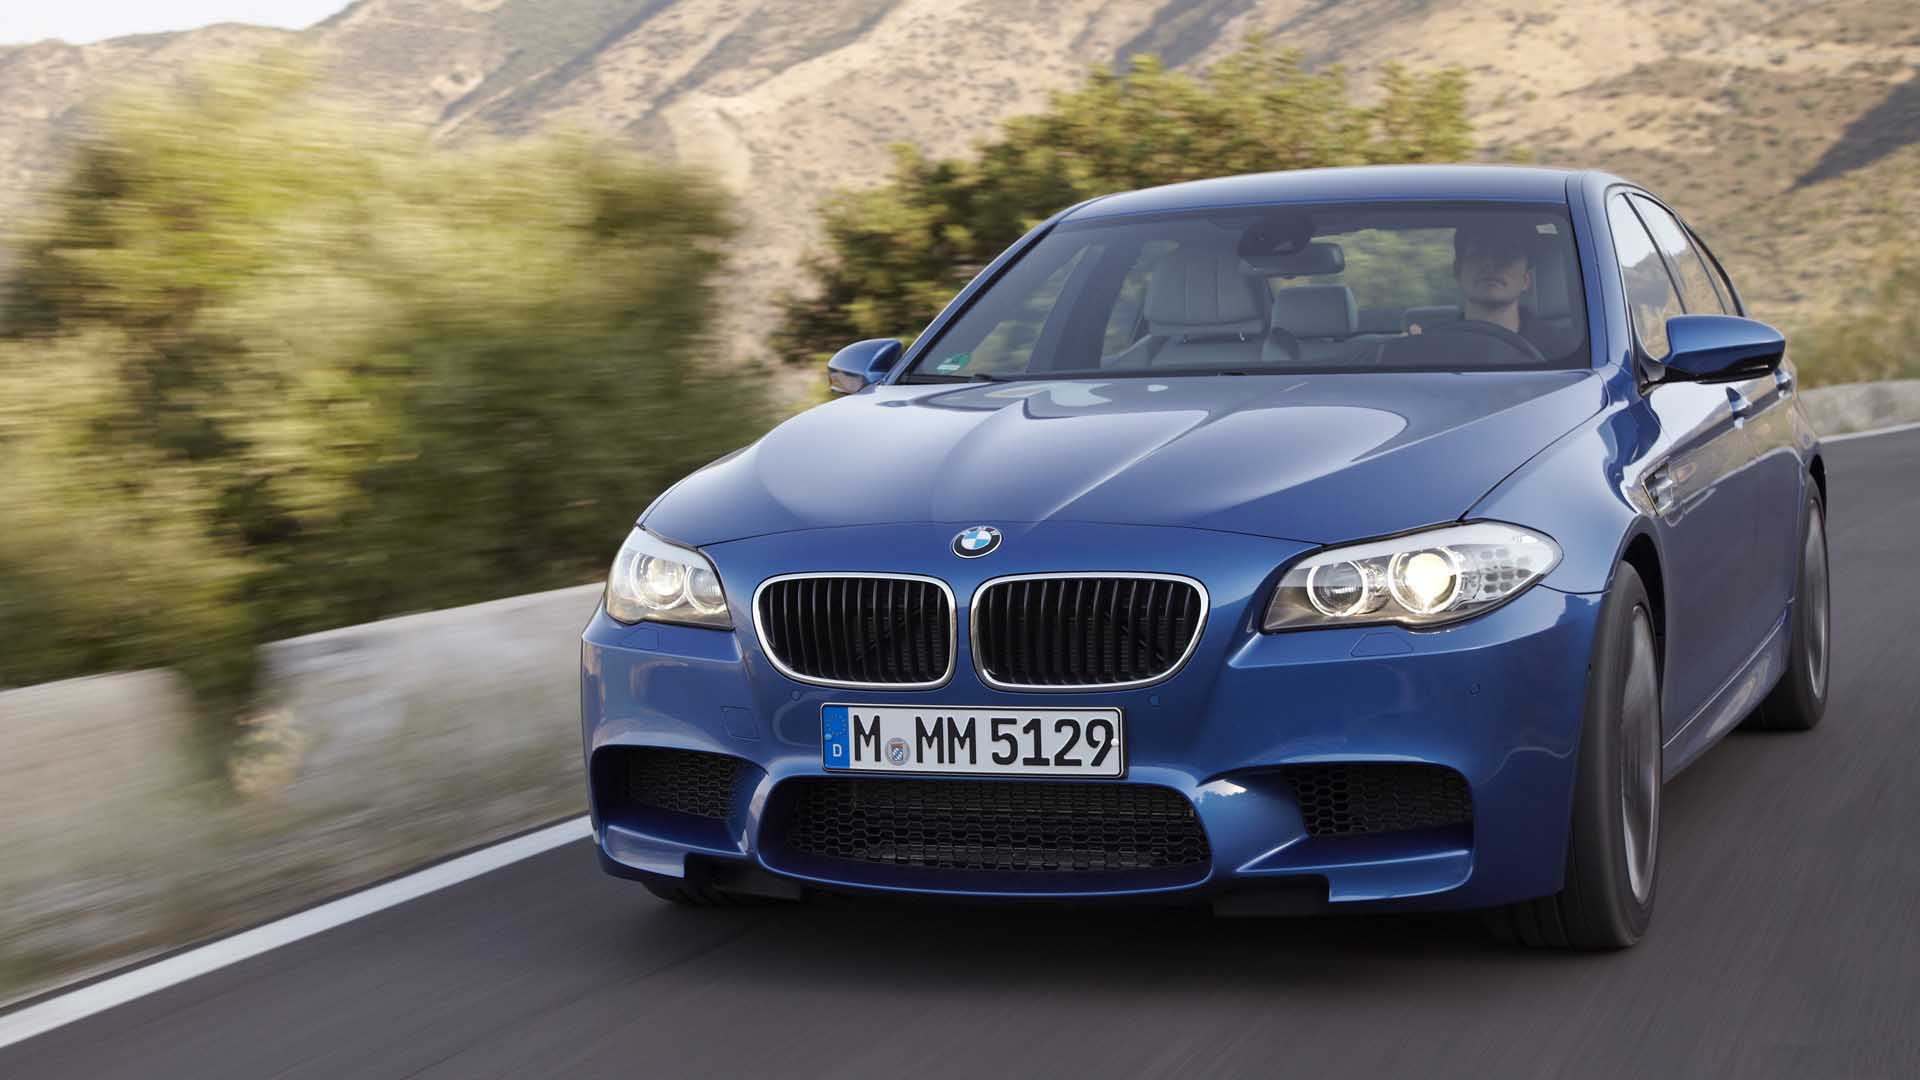 Blue BMW m5 amazing car running on a road while racing 1920x1080